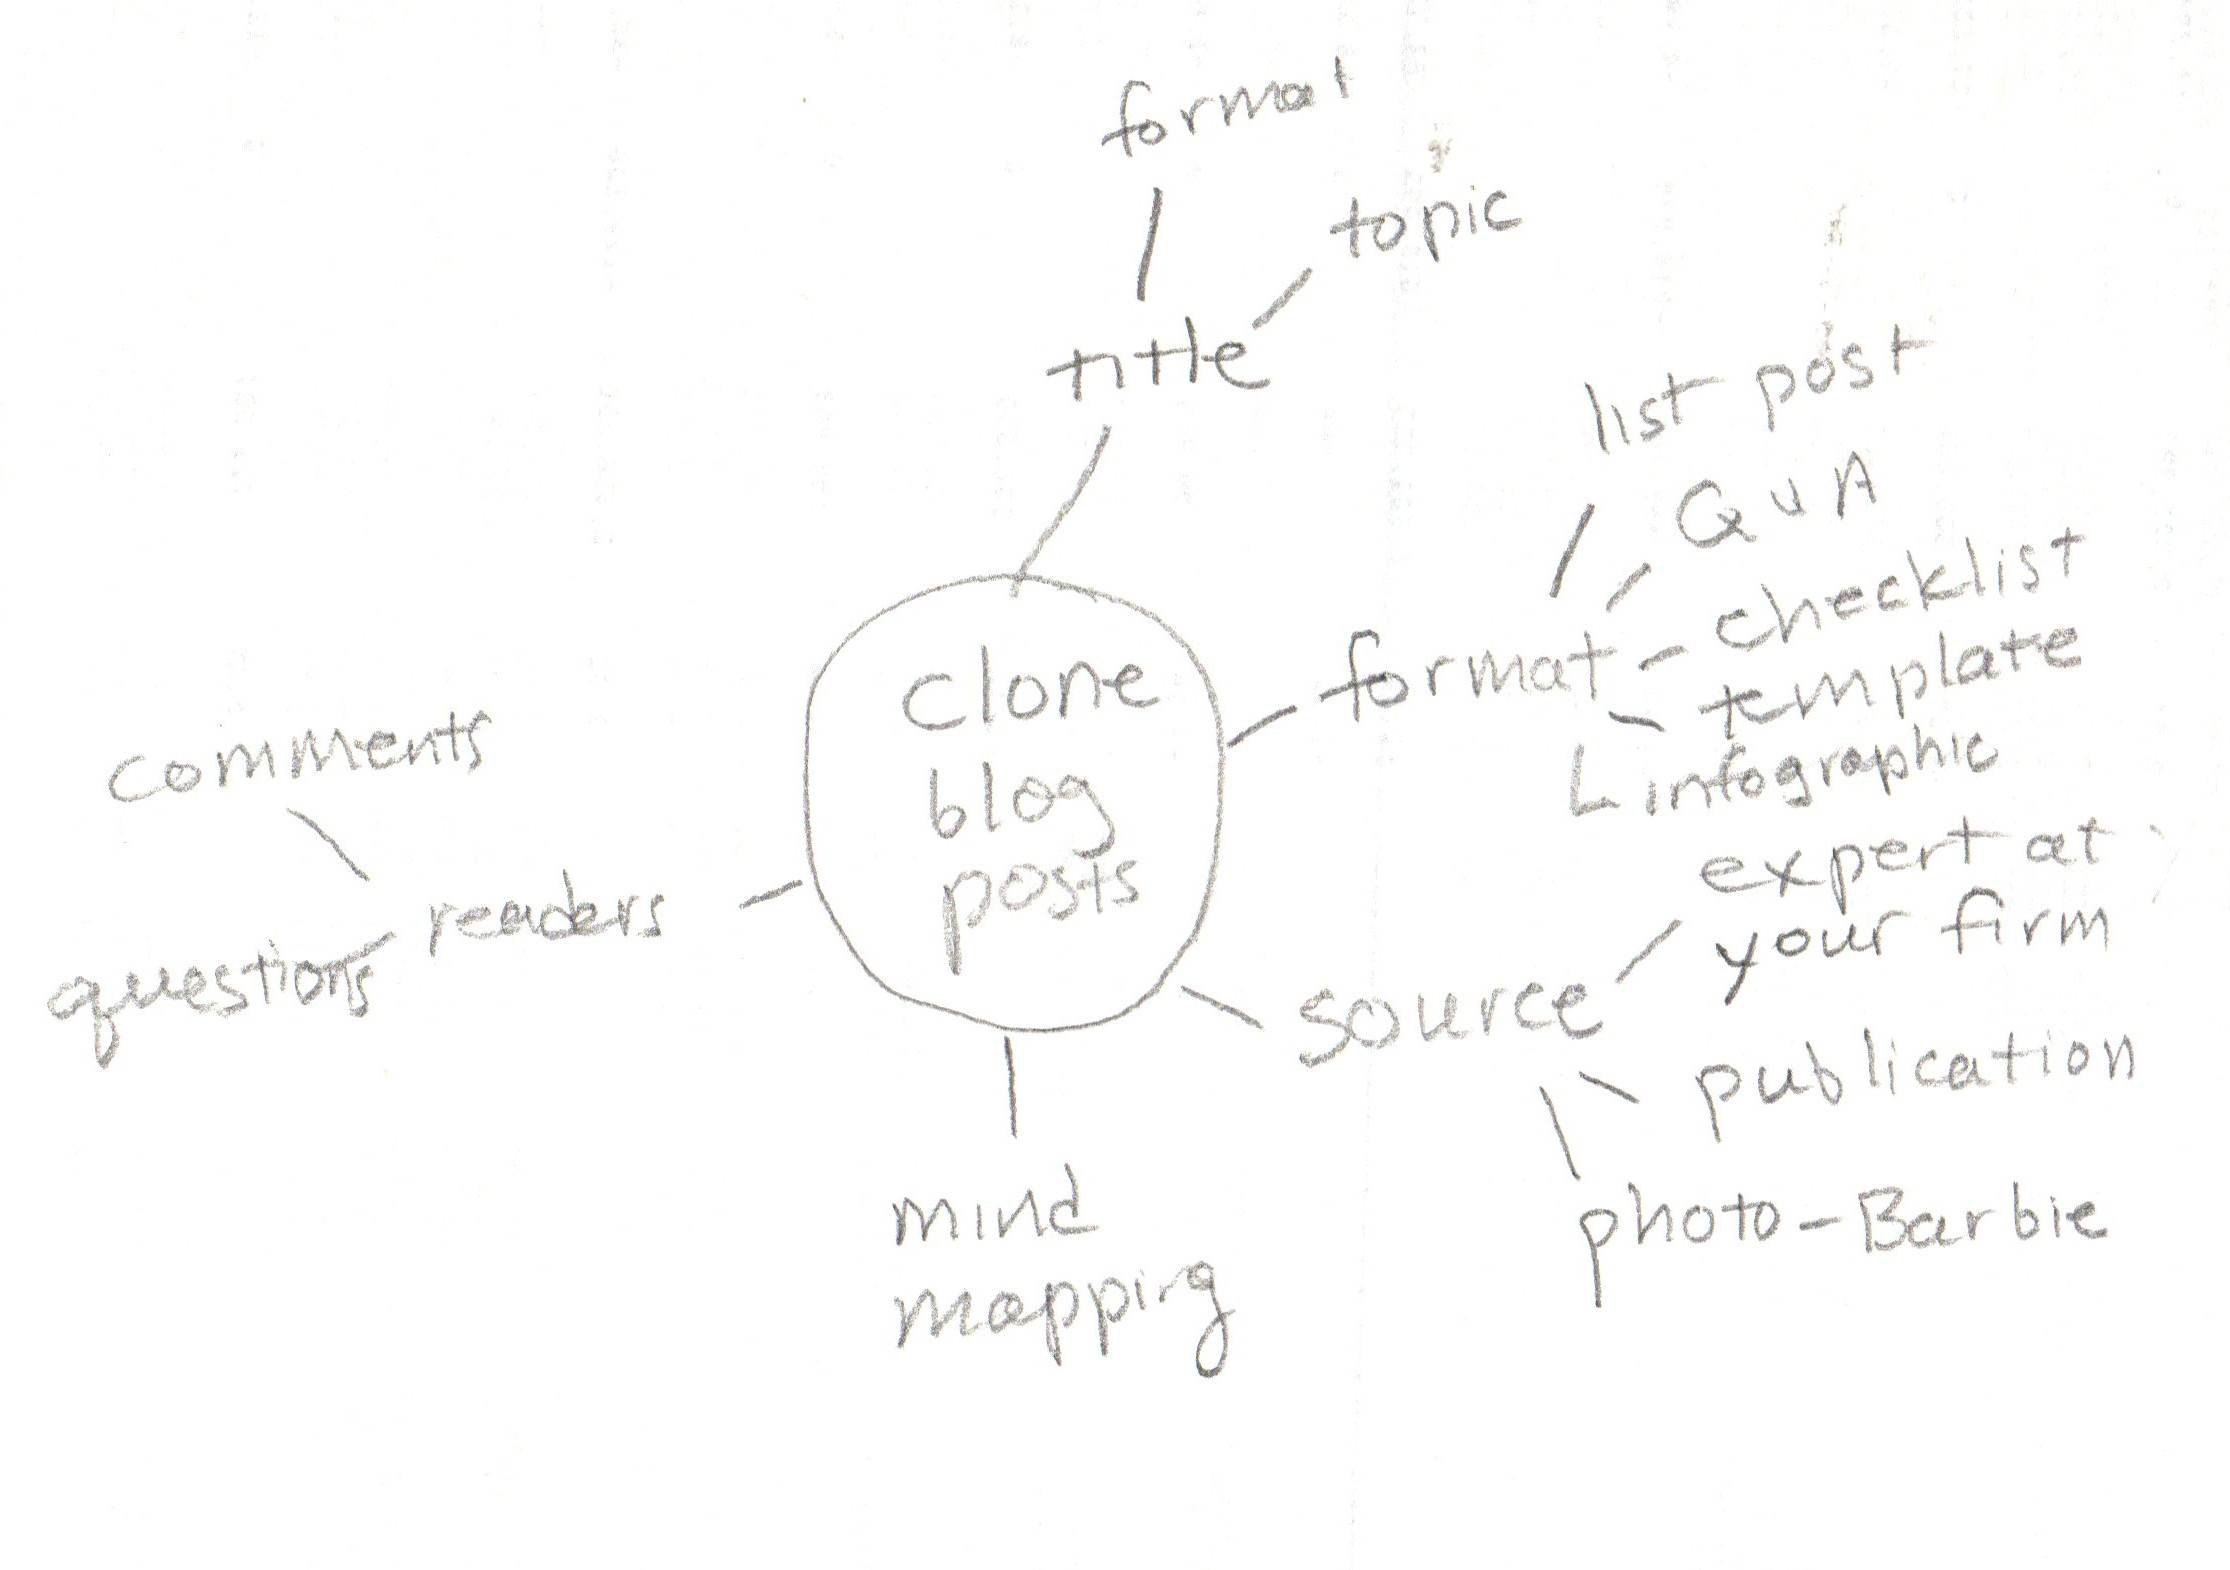 clone blog post mind map